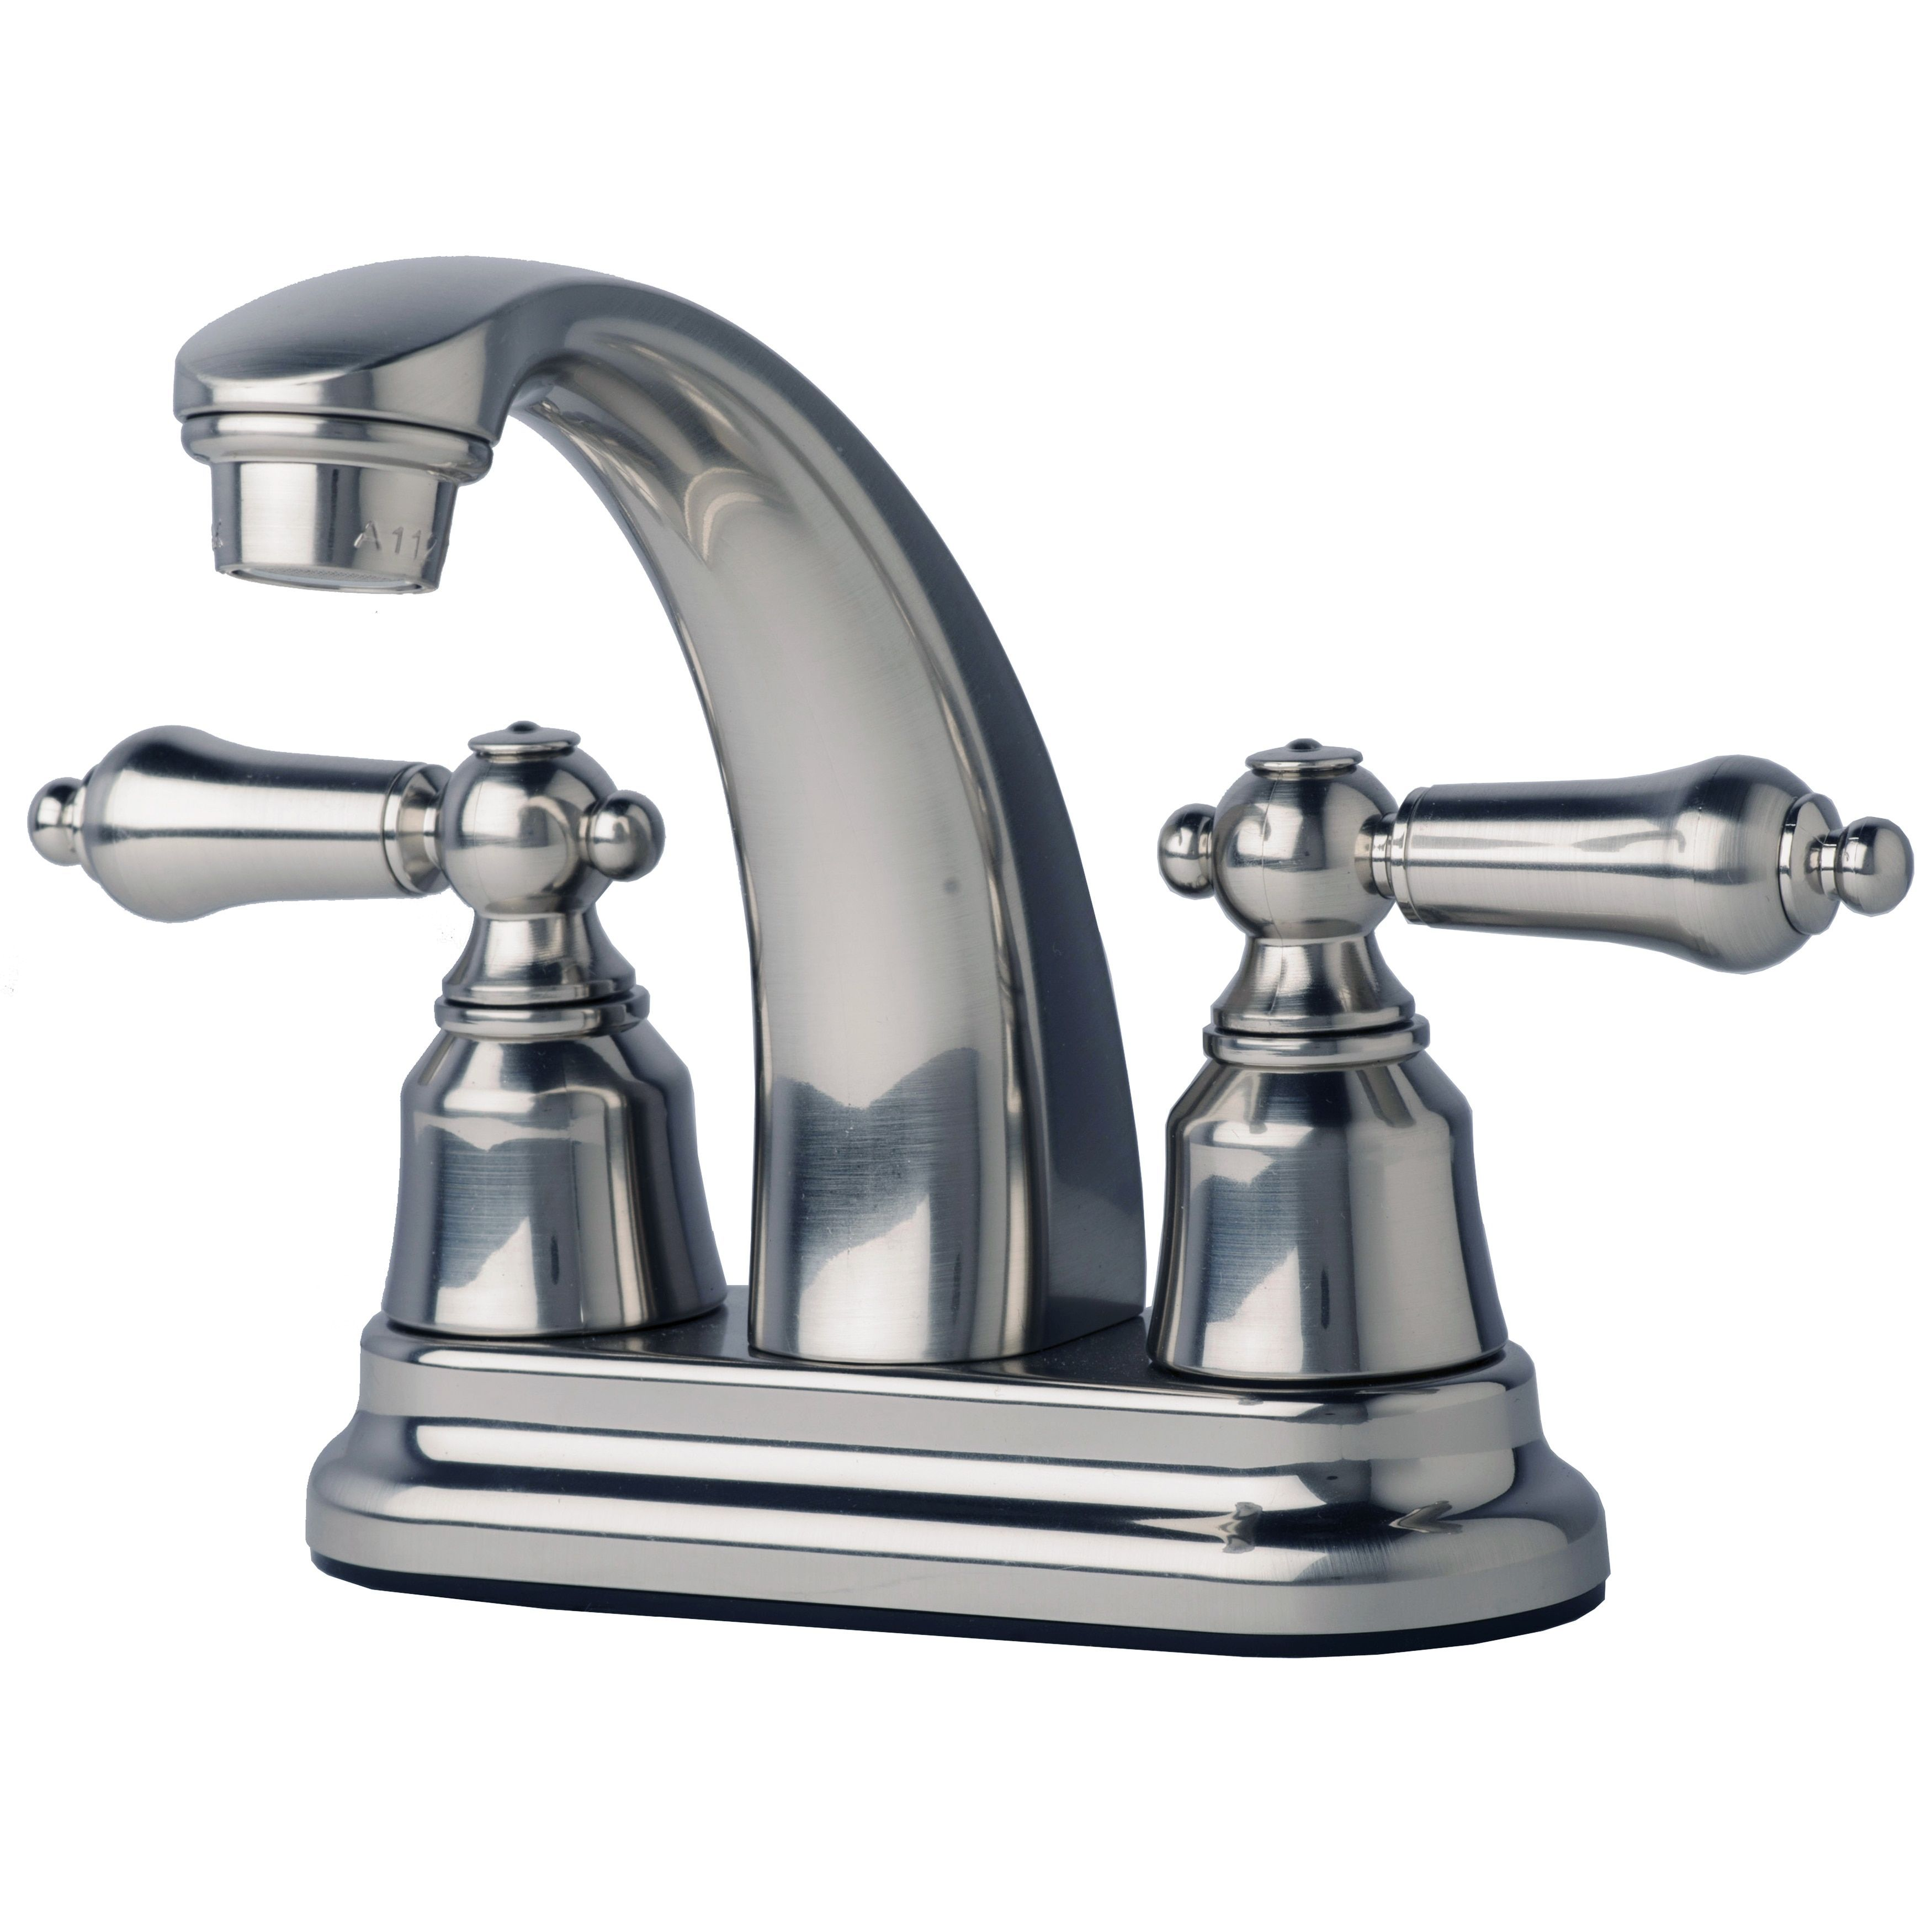 Builders Shoppe 2003 Rv Motorhome Replacement Lavatory Faucet